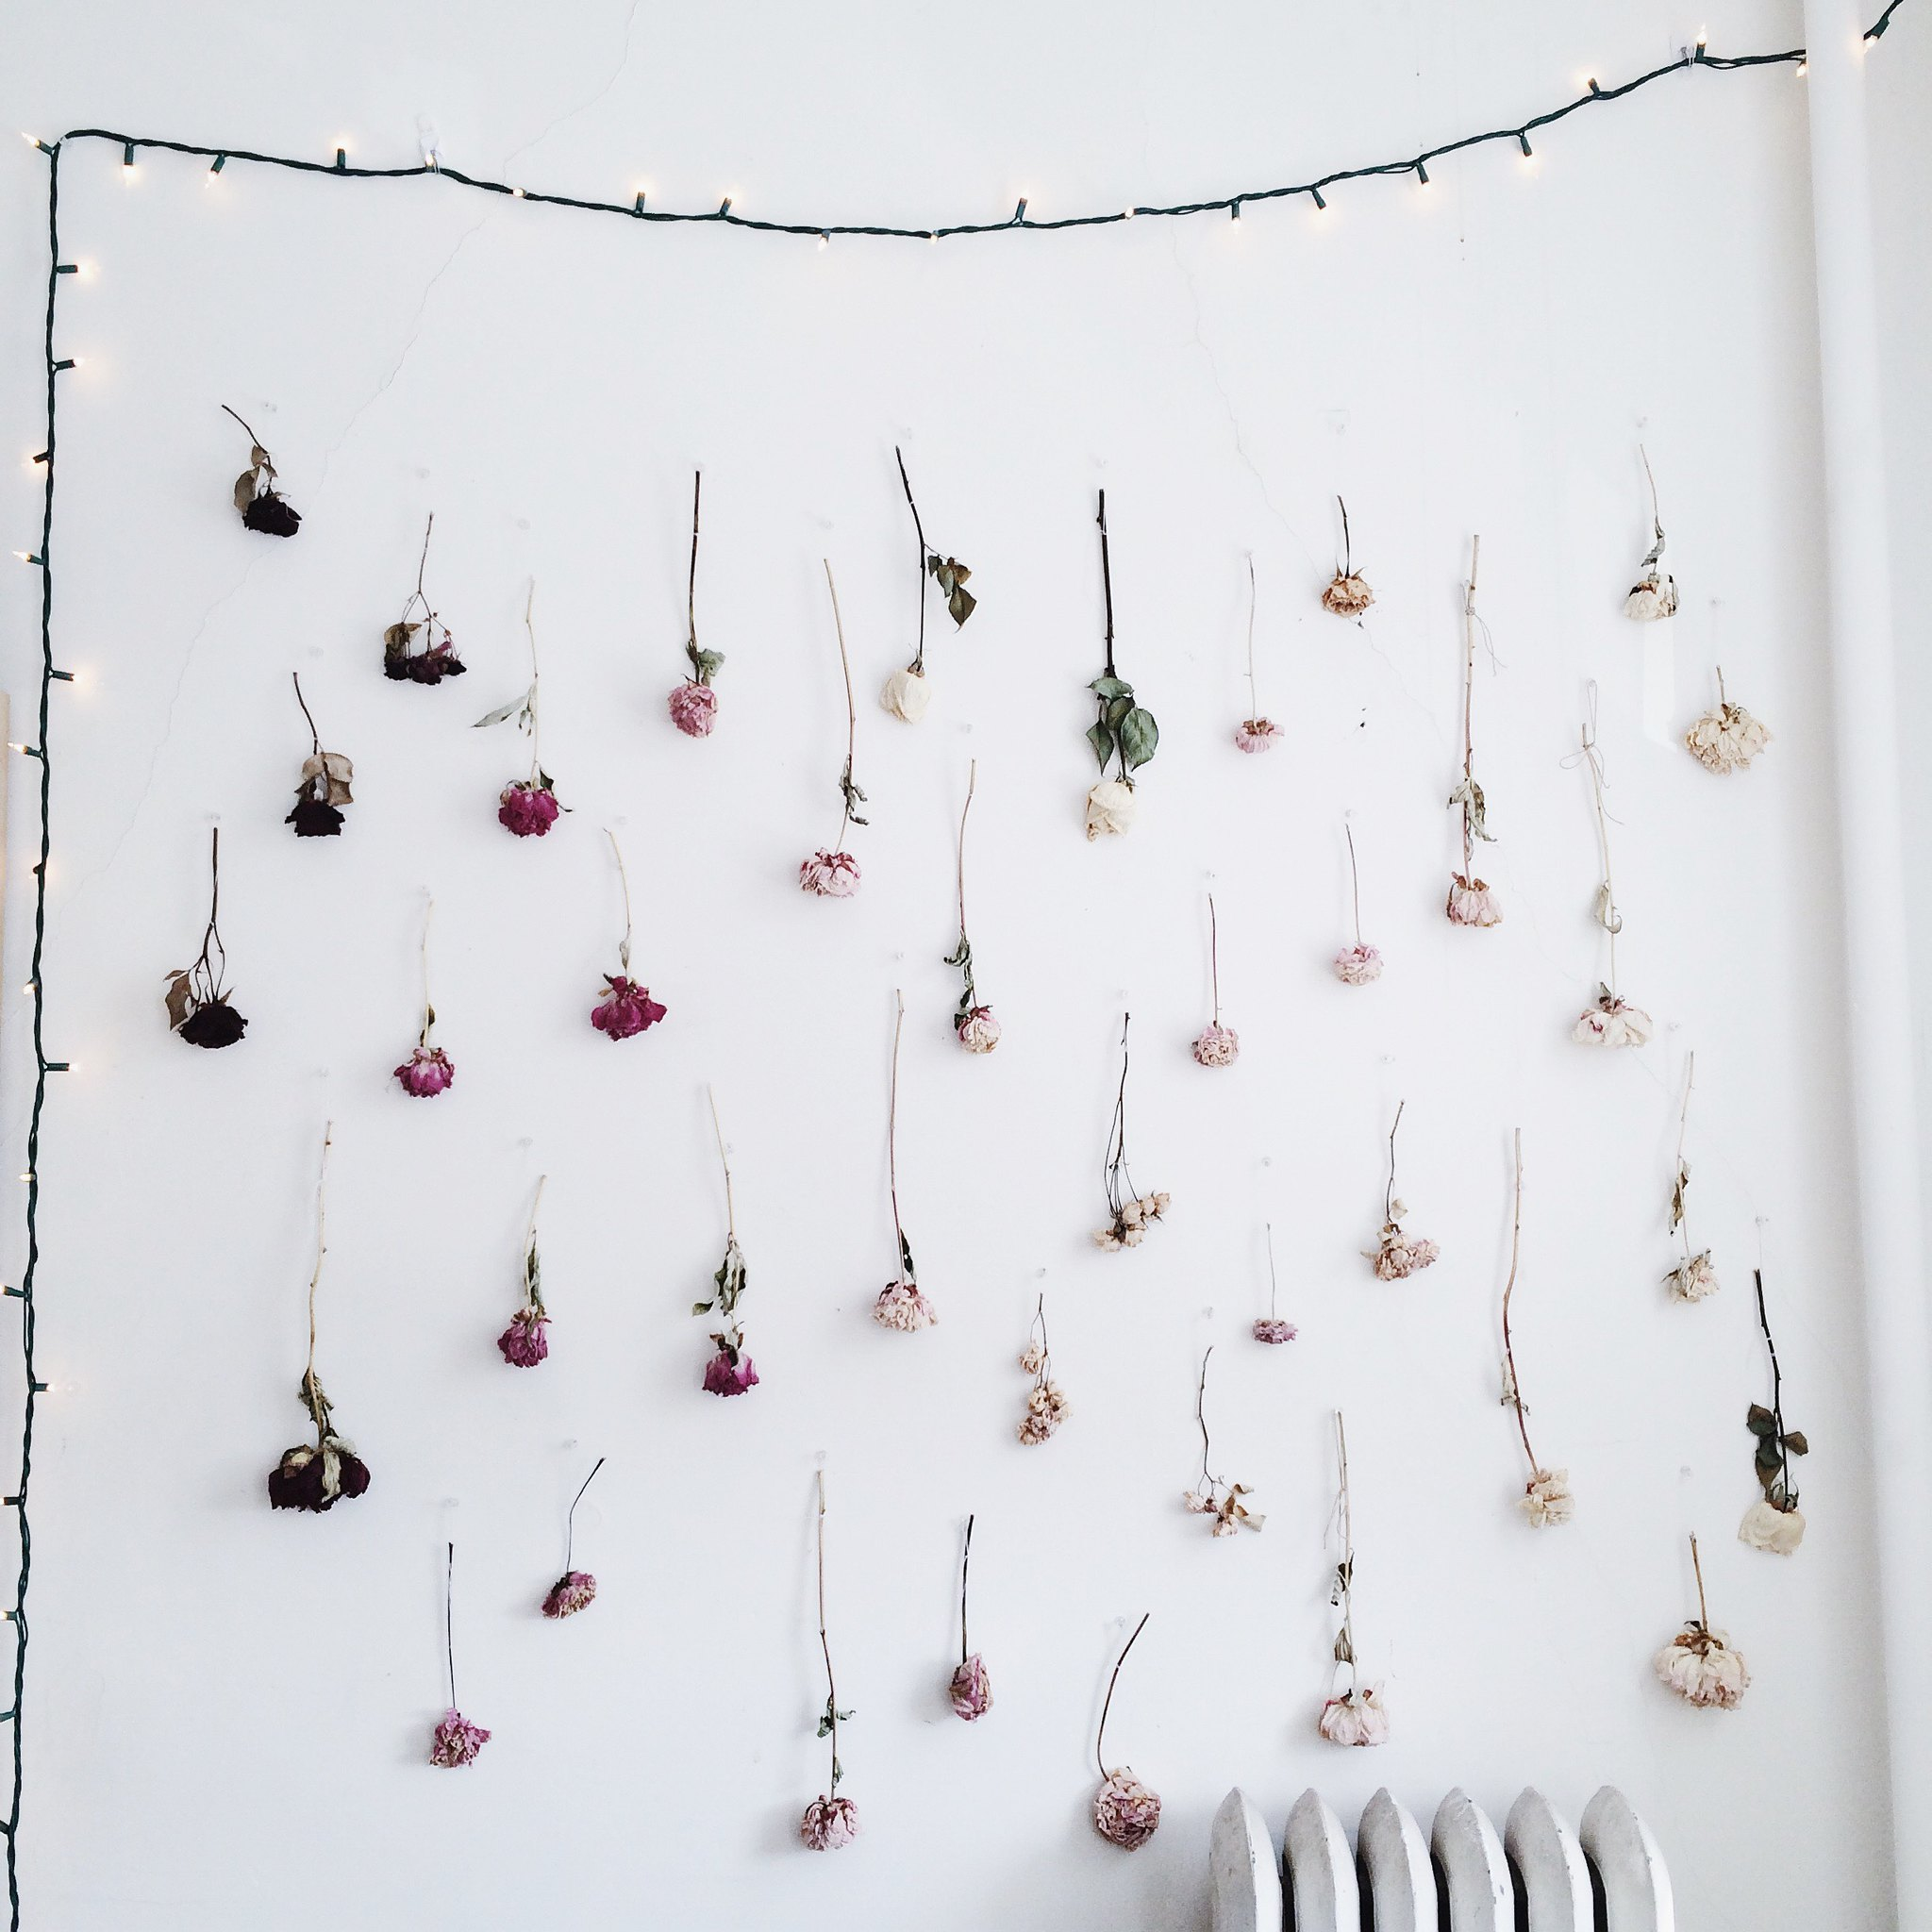 DIY Ombre Dried Flower Wall on juliettelaura.blogspot.com